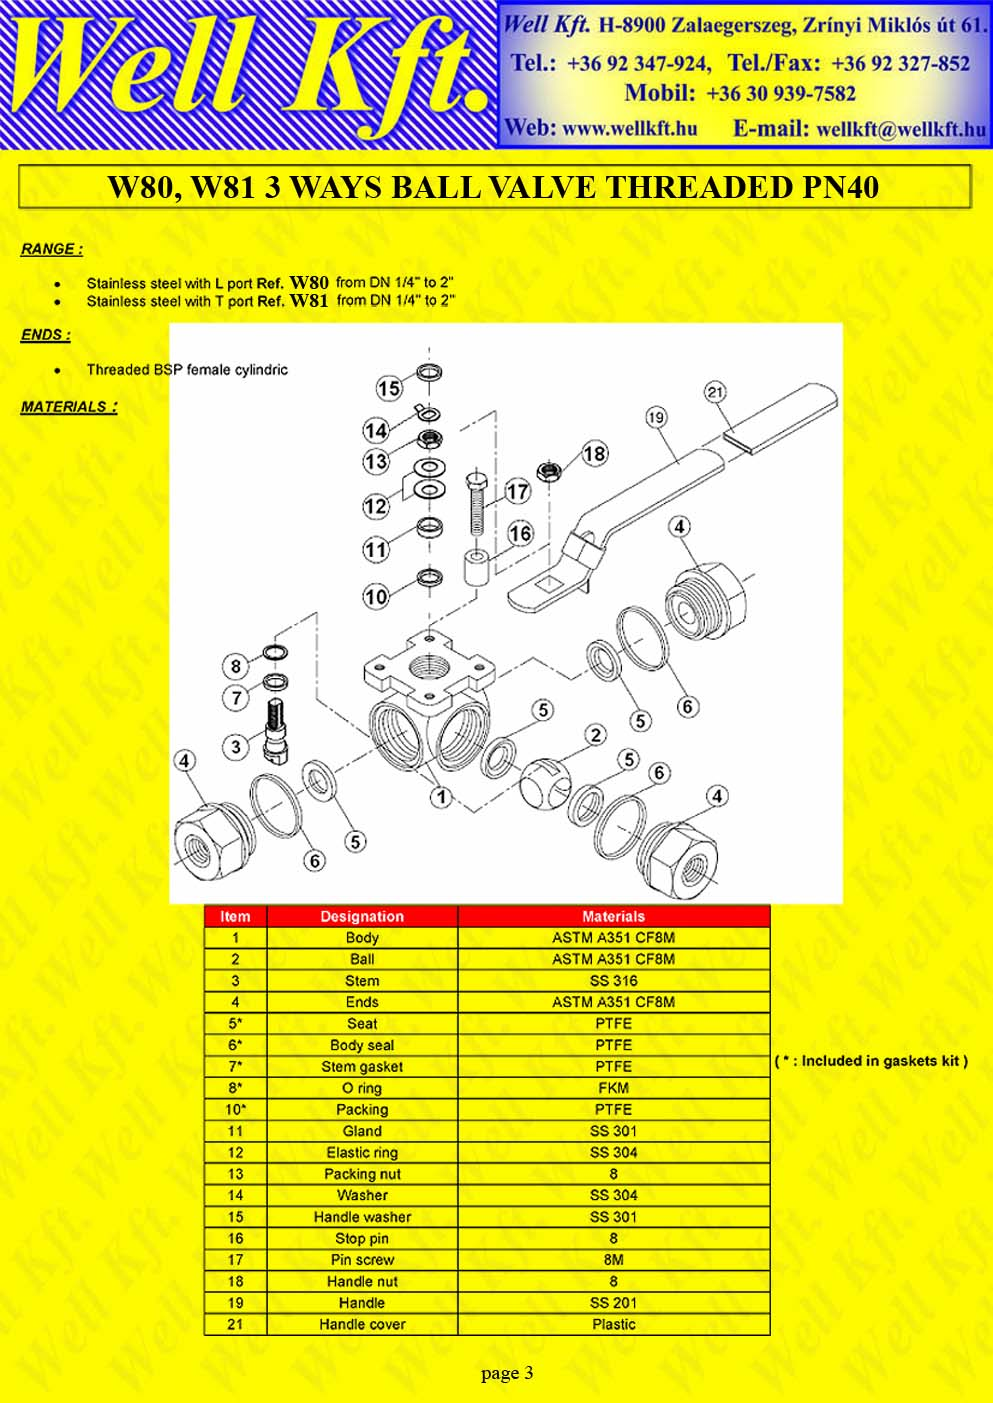 3 ways ball valve stainless steel threaded PN 40 (3.)